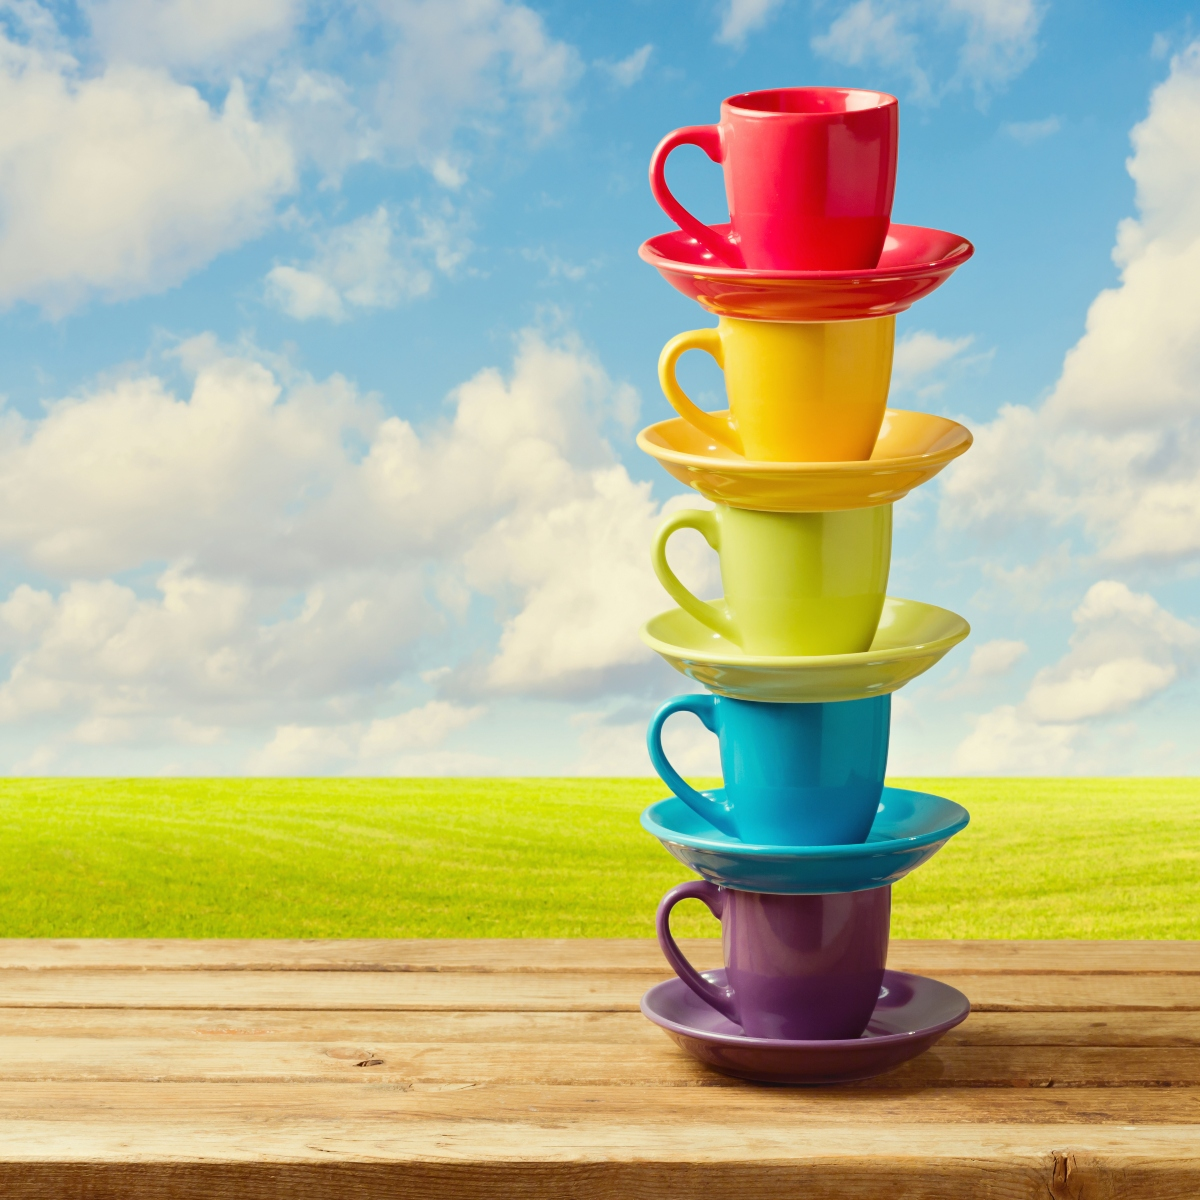 Rainbow color cups on wooden table over beautiful sky and meadow.